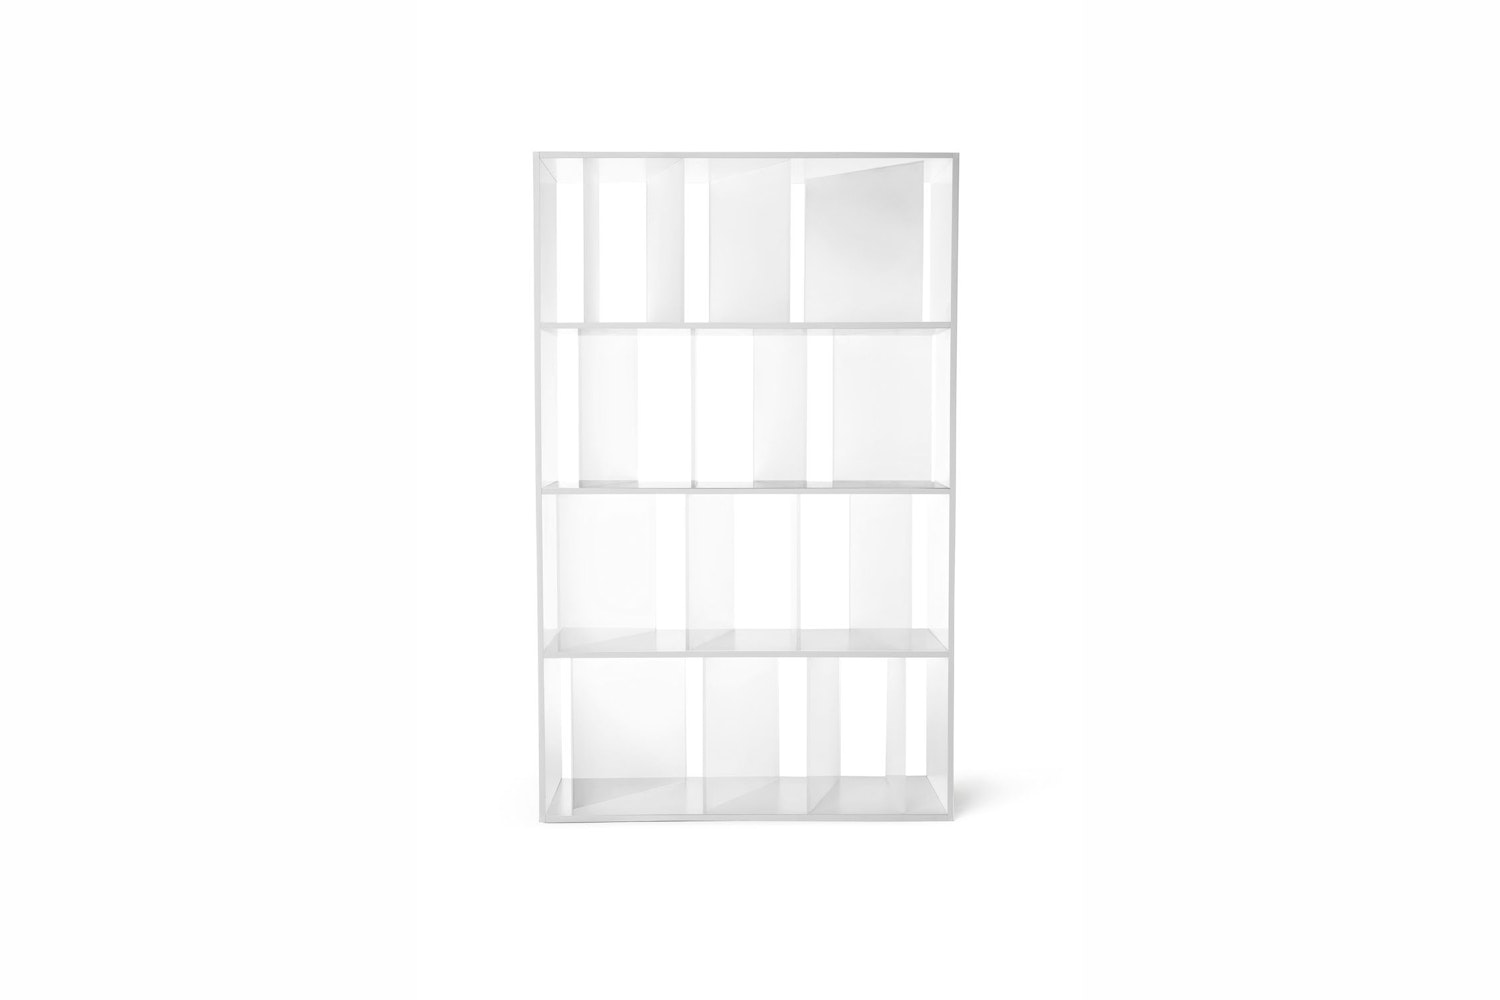 Sundial Bookshelf by Nendo for Kartell